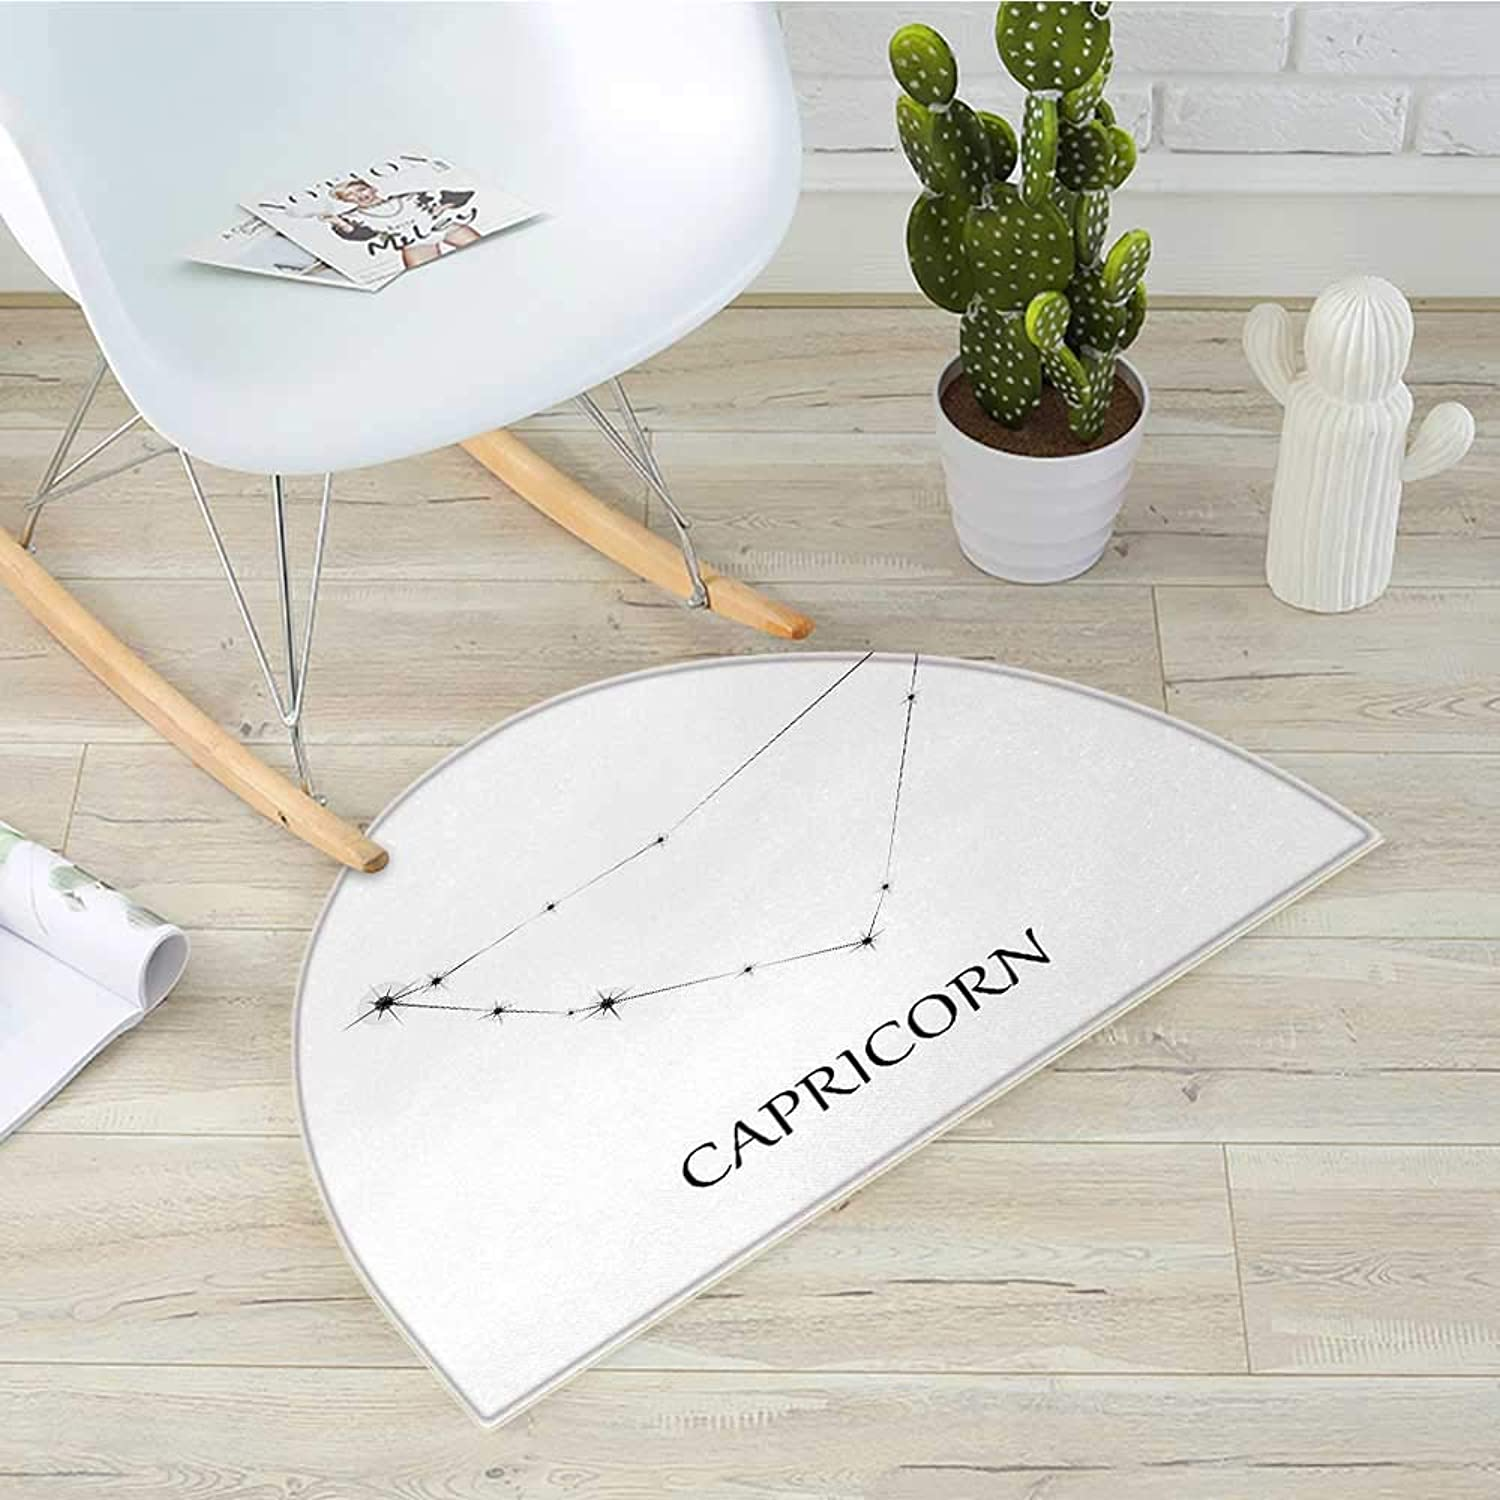 Zodiac Capricorn Semicircle Doormat Capricorn Constellation with Aligned Stars Astronomical Elements Halfmoon doormats H 43.3  xD 64.9  Black and White